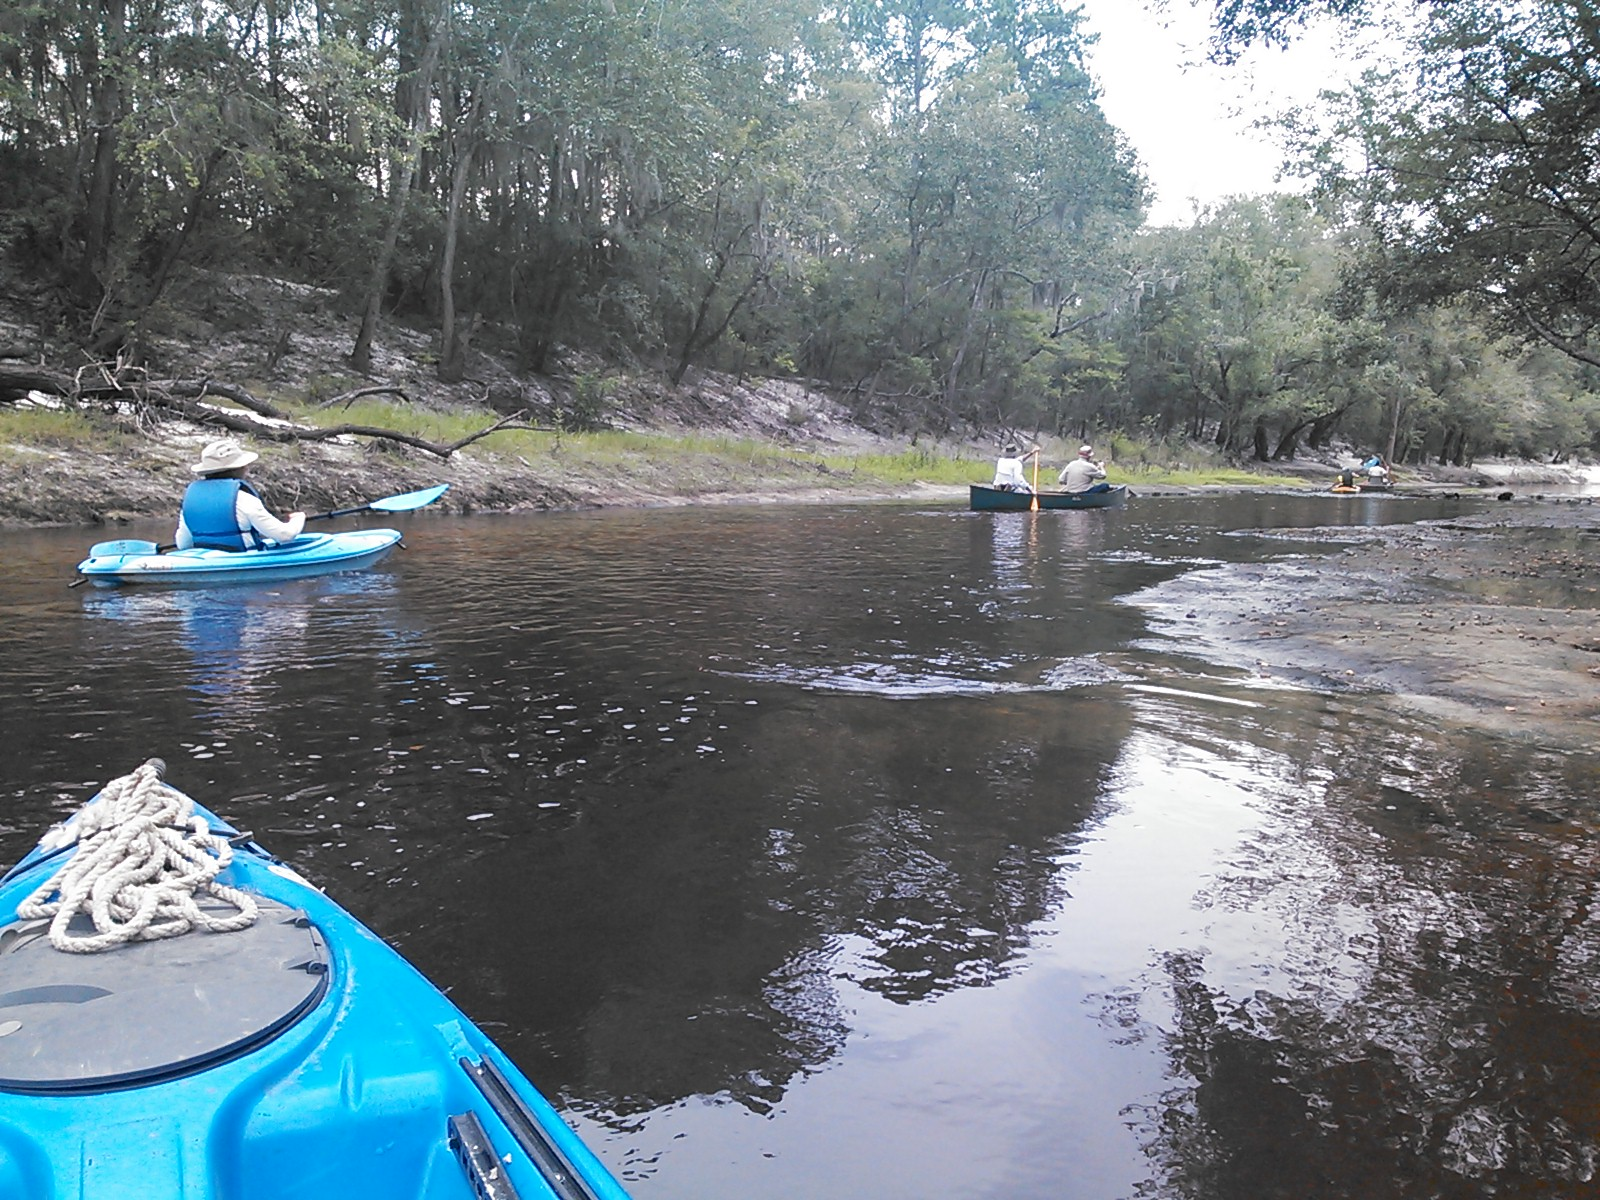 1600x1200 Gretchen Quarterman @ shoals, in Alapaha River Outing, by John S. Quarterman, for WWALS.net, 24 August 2014